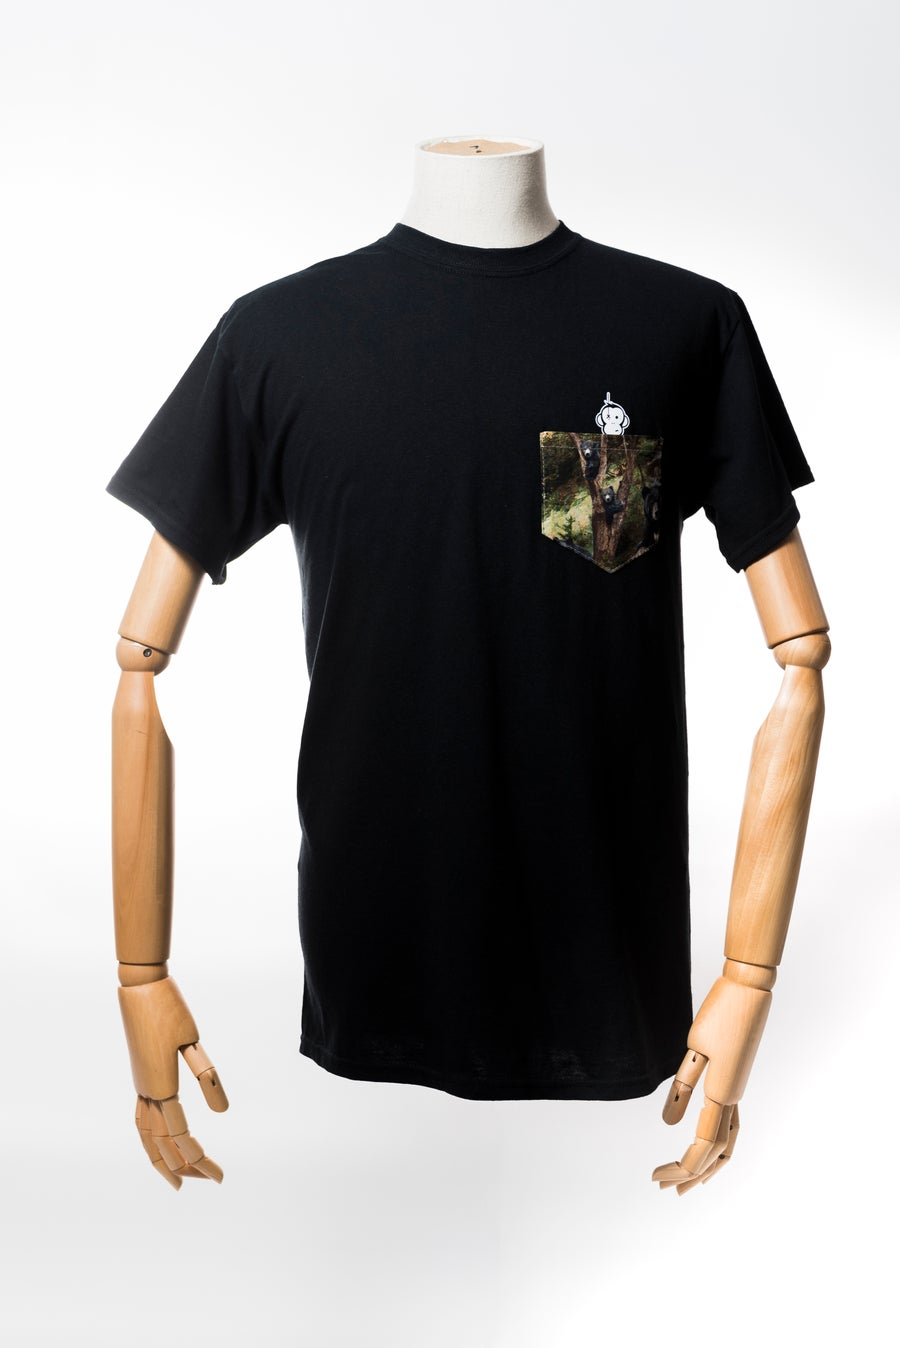 Image of Monkey Climber Bear Cubs pocket tee I Black